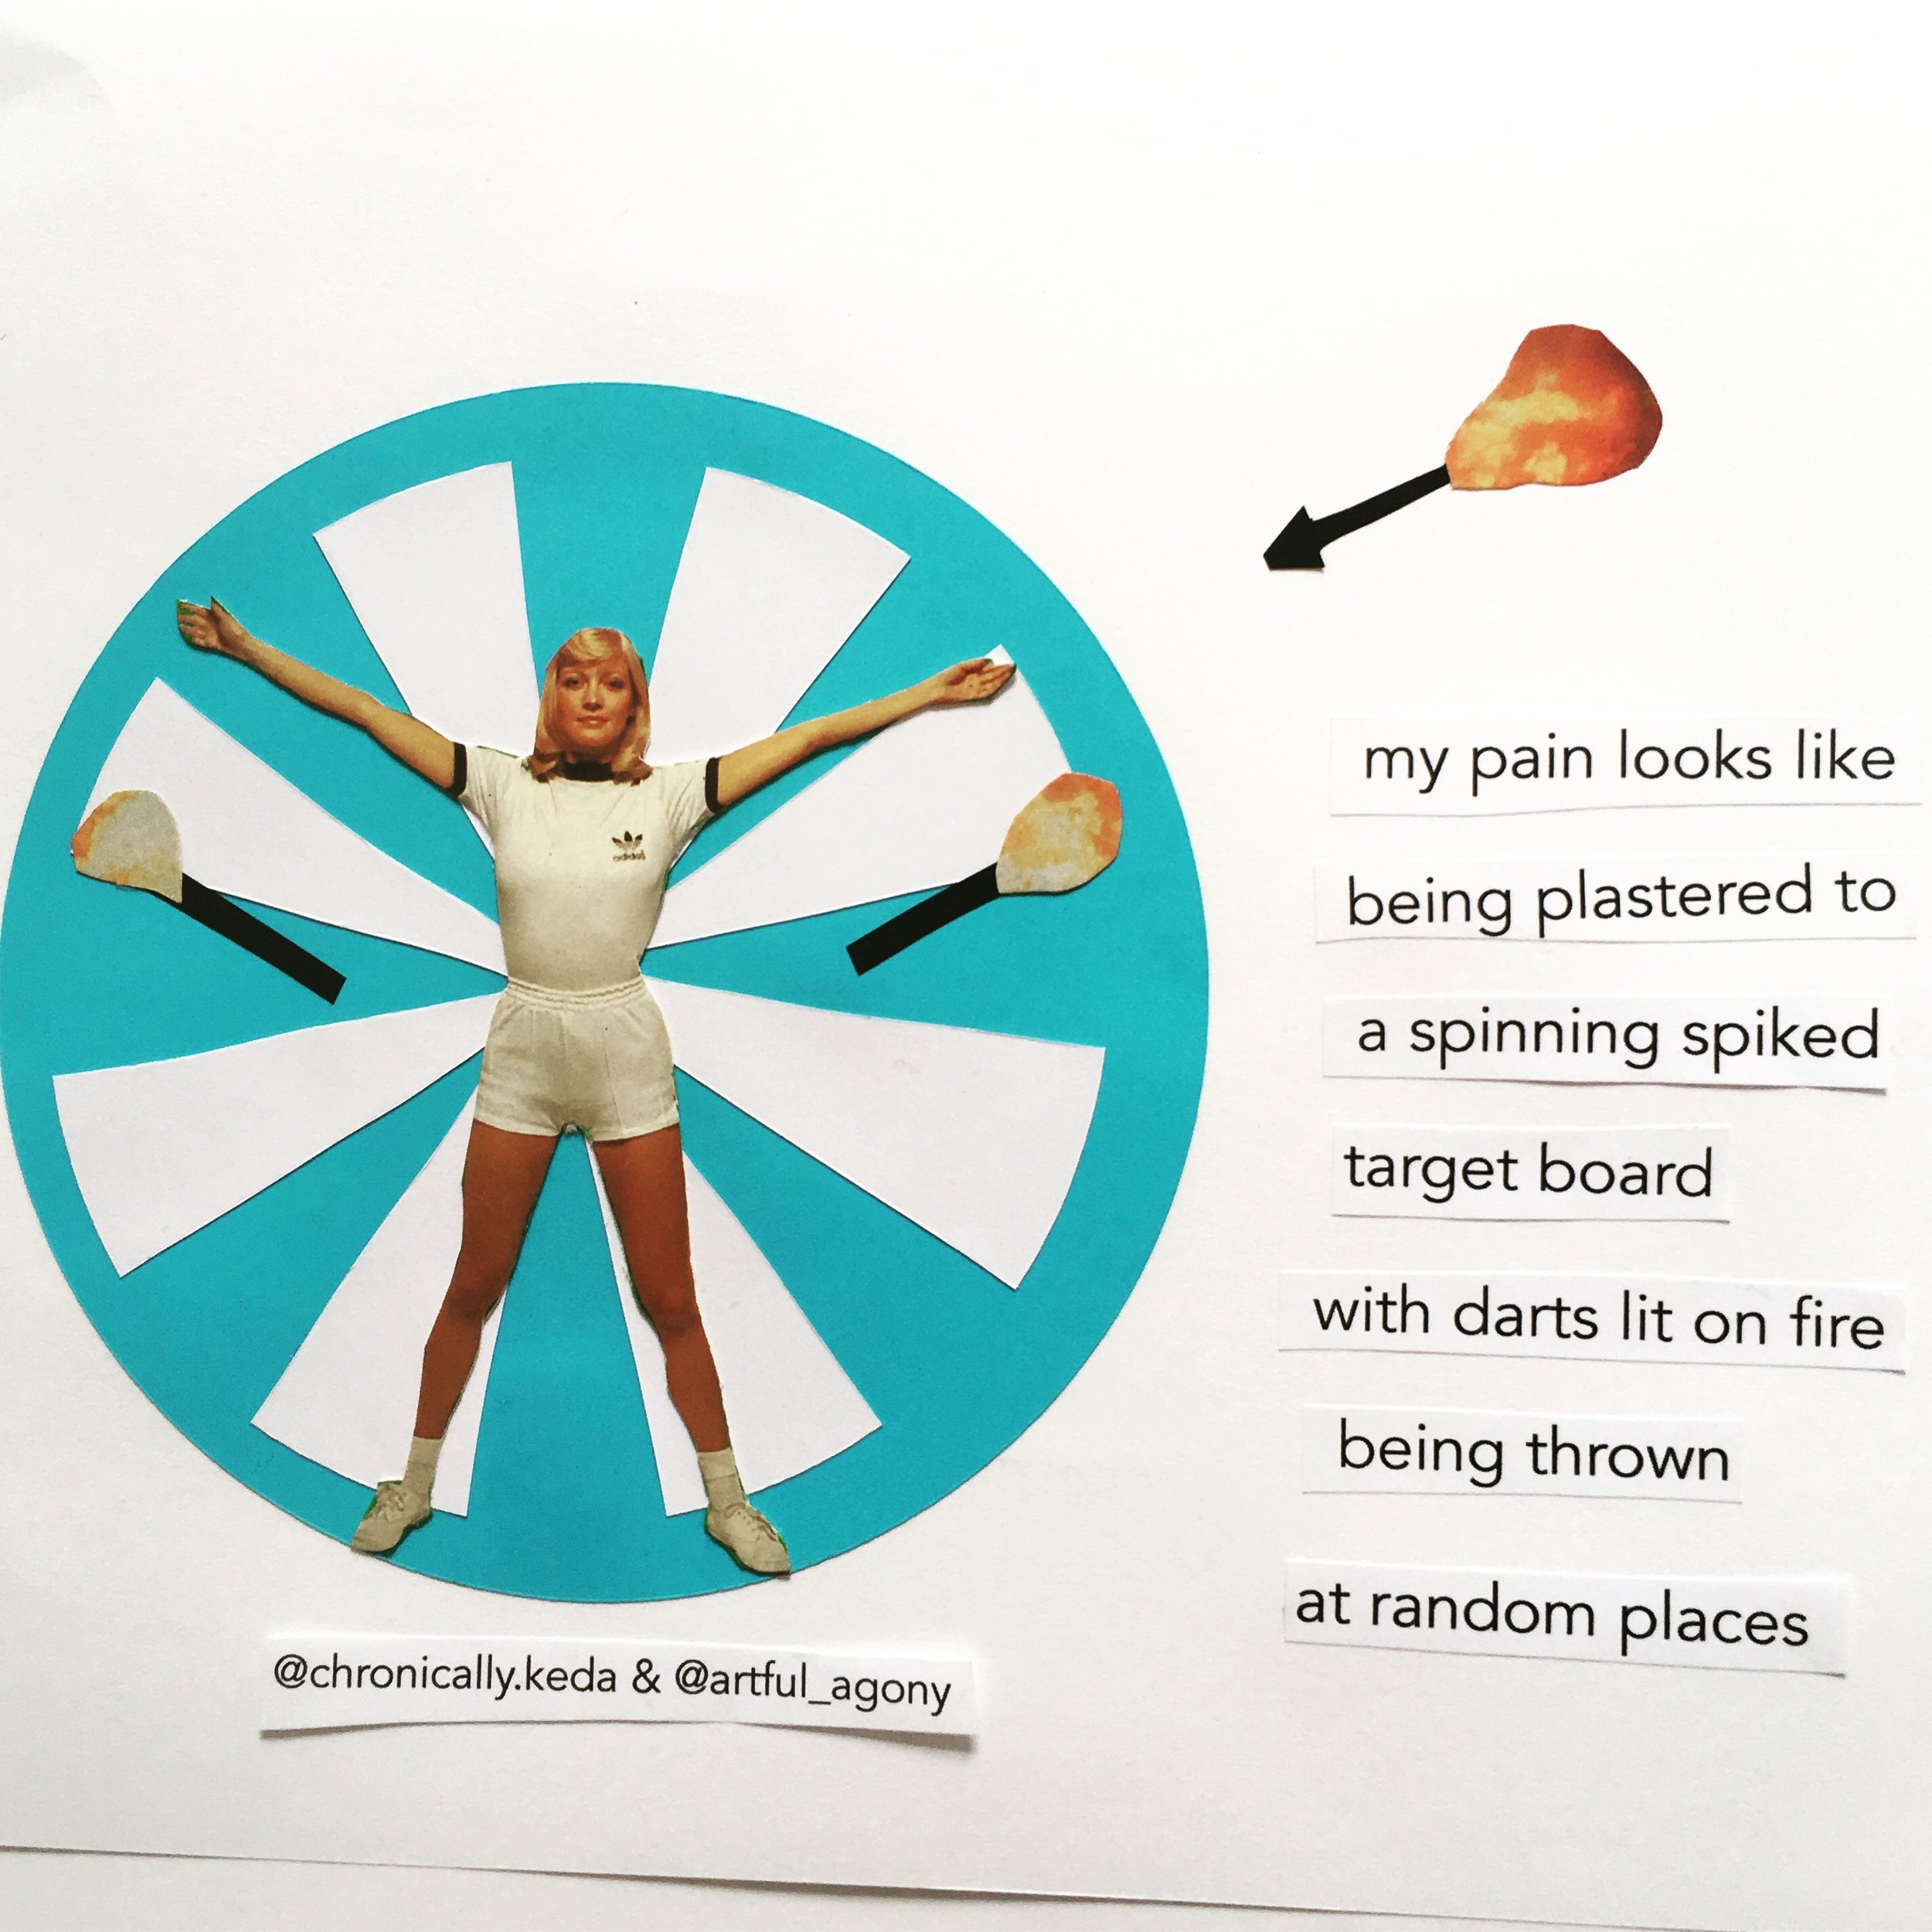 TARGET BOARD  'My pain looks like being plastered to a spinning spiked target board with darts lit on fire being thrown at random places.'  submitted by @chronically.keda